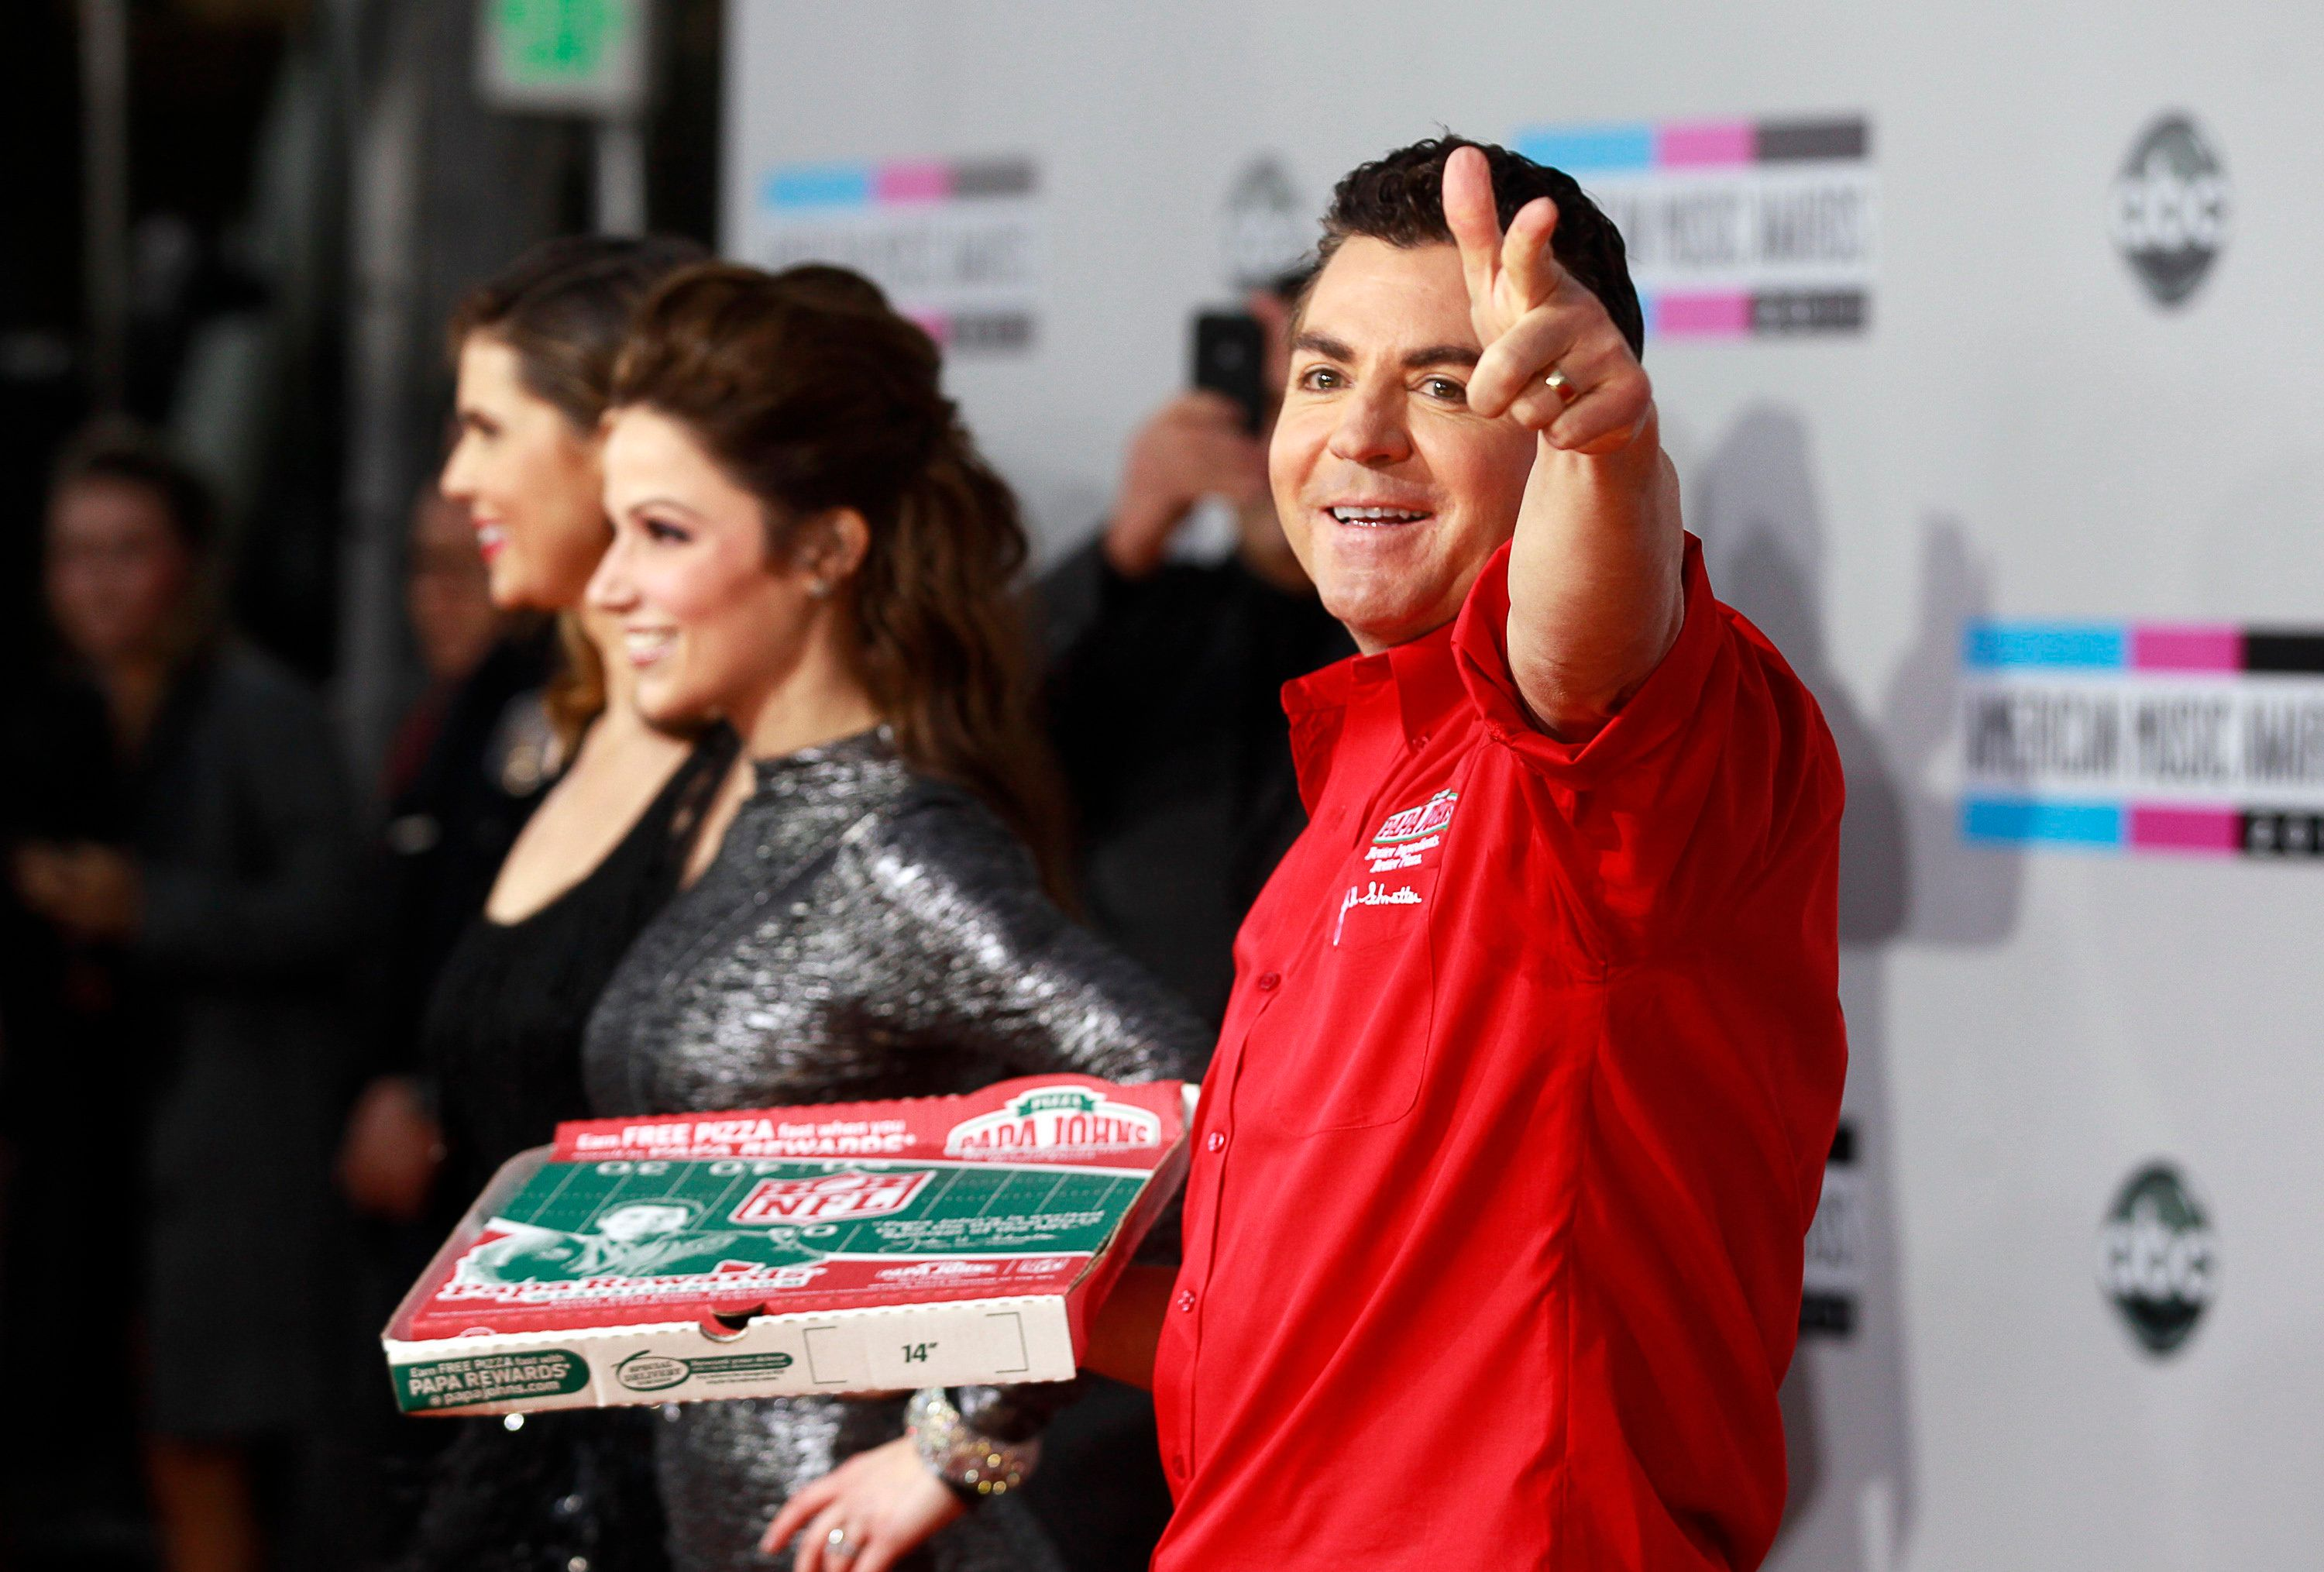 Papa John's founder out as CEO weeks after criticizing NFL